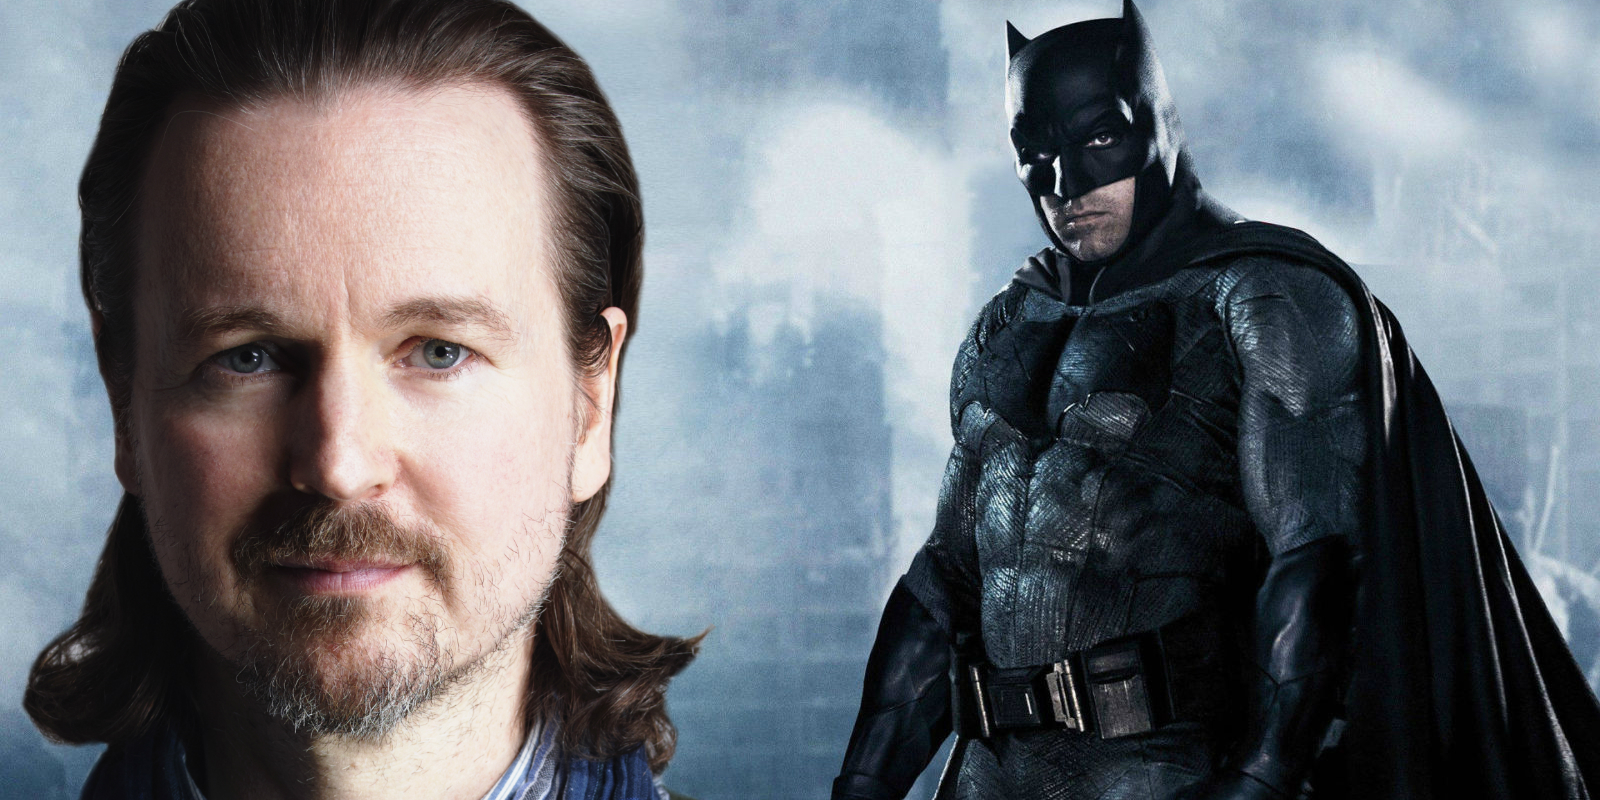 matt reeves directing